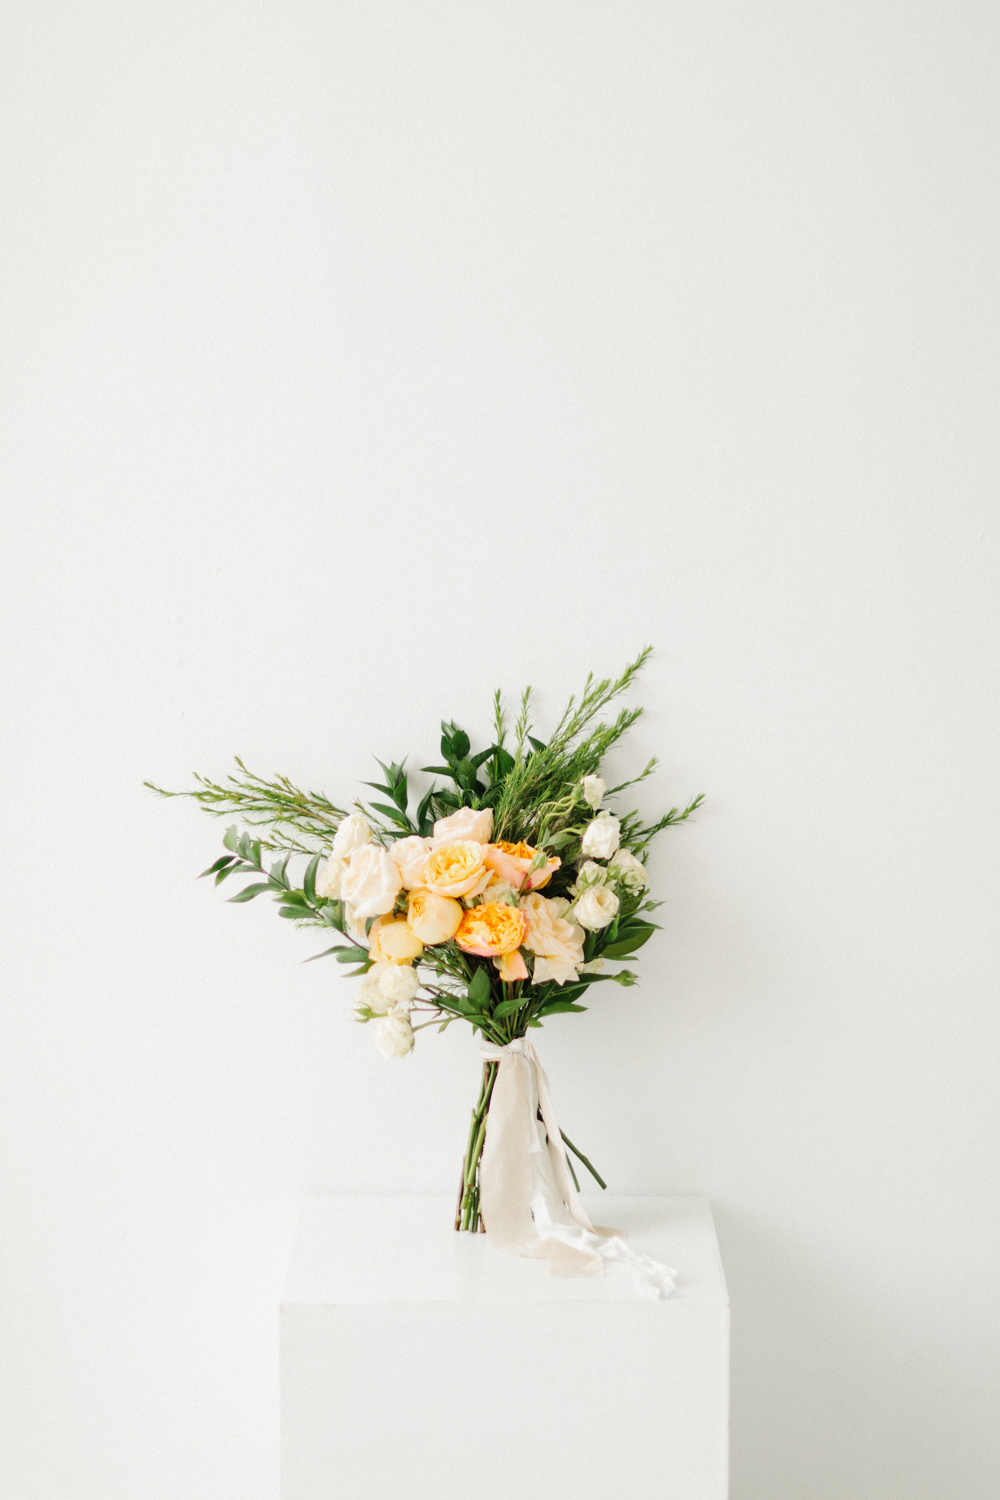 Seattle Fine Art Wedding Photographer | Seattle Downtown White Studio Bridal Session | Stunning Wedding Bouquet | Seattle Bride | Seattle Wedding | Photography Studio Space | Emma Rose Company Wedding Photography-1.jpg